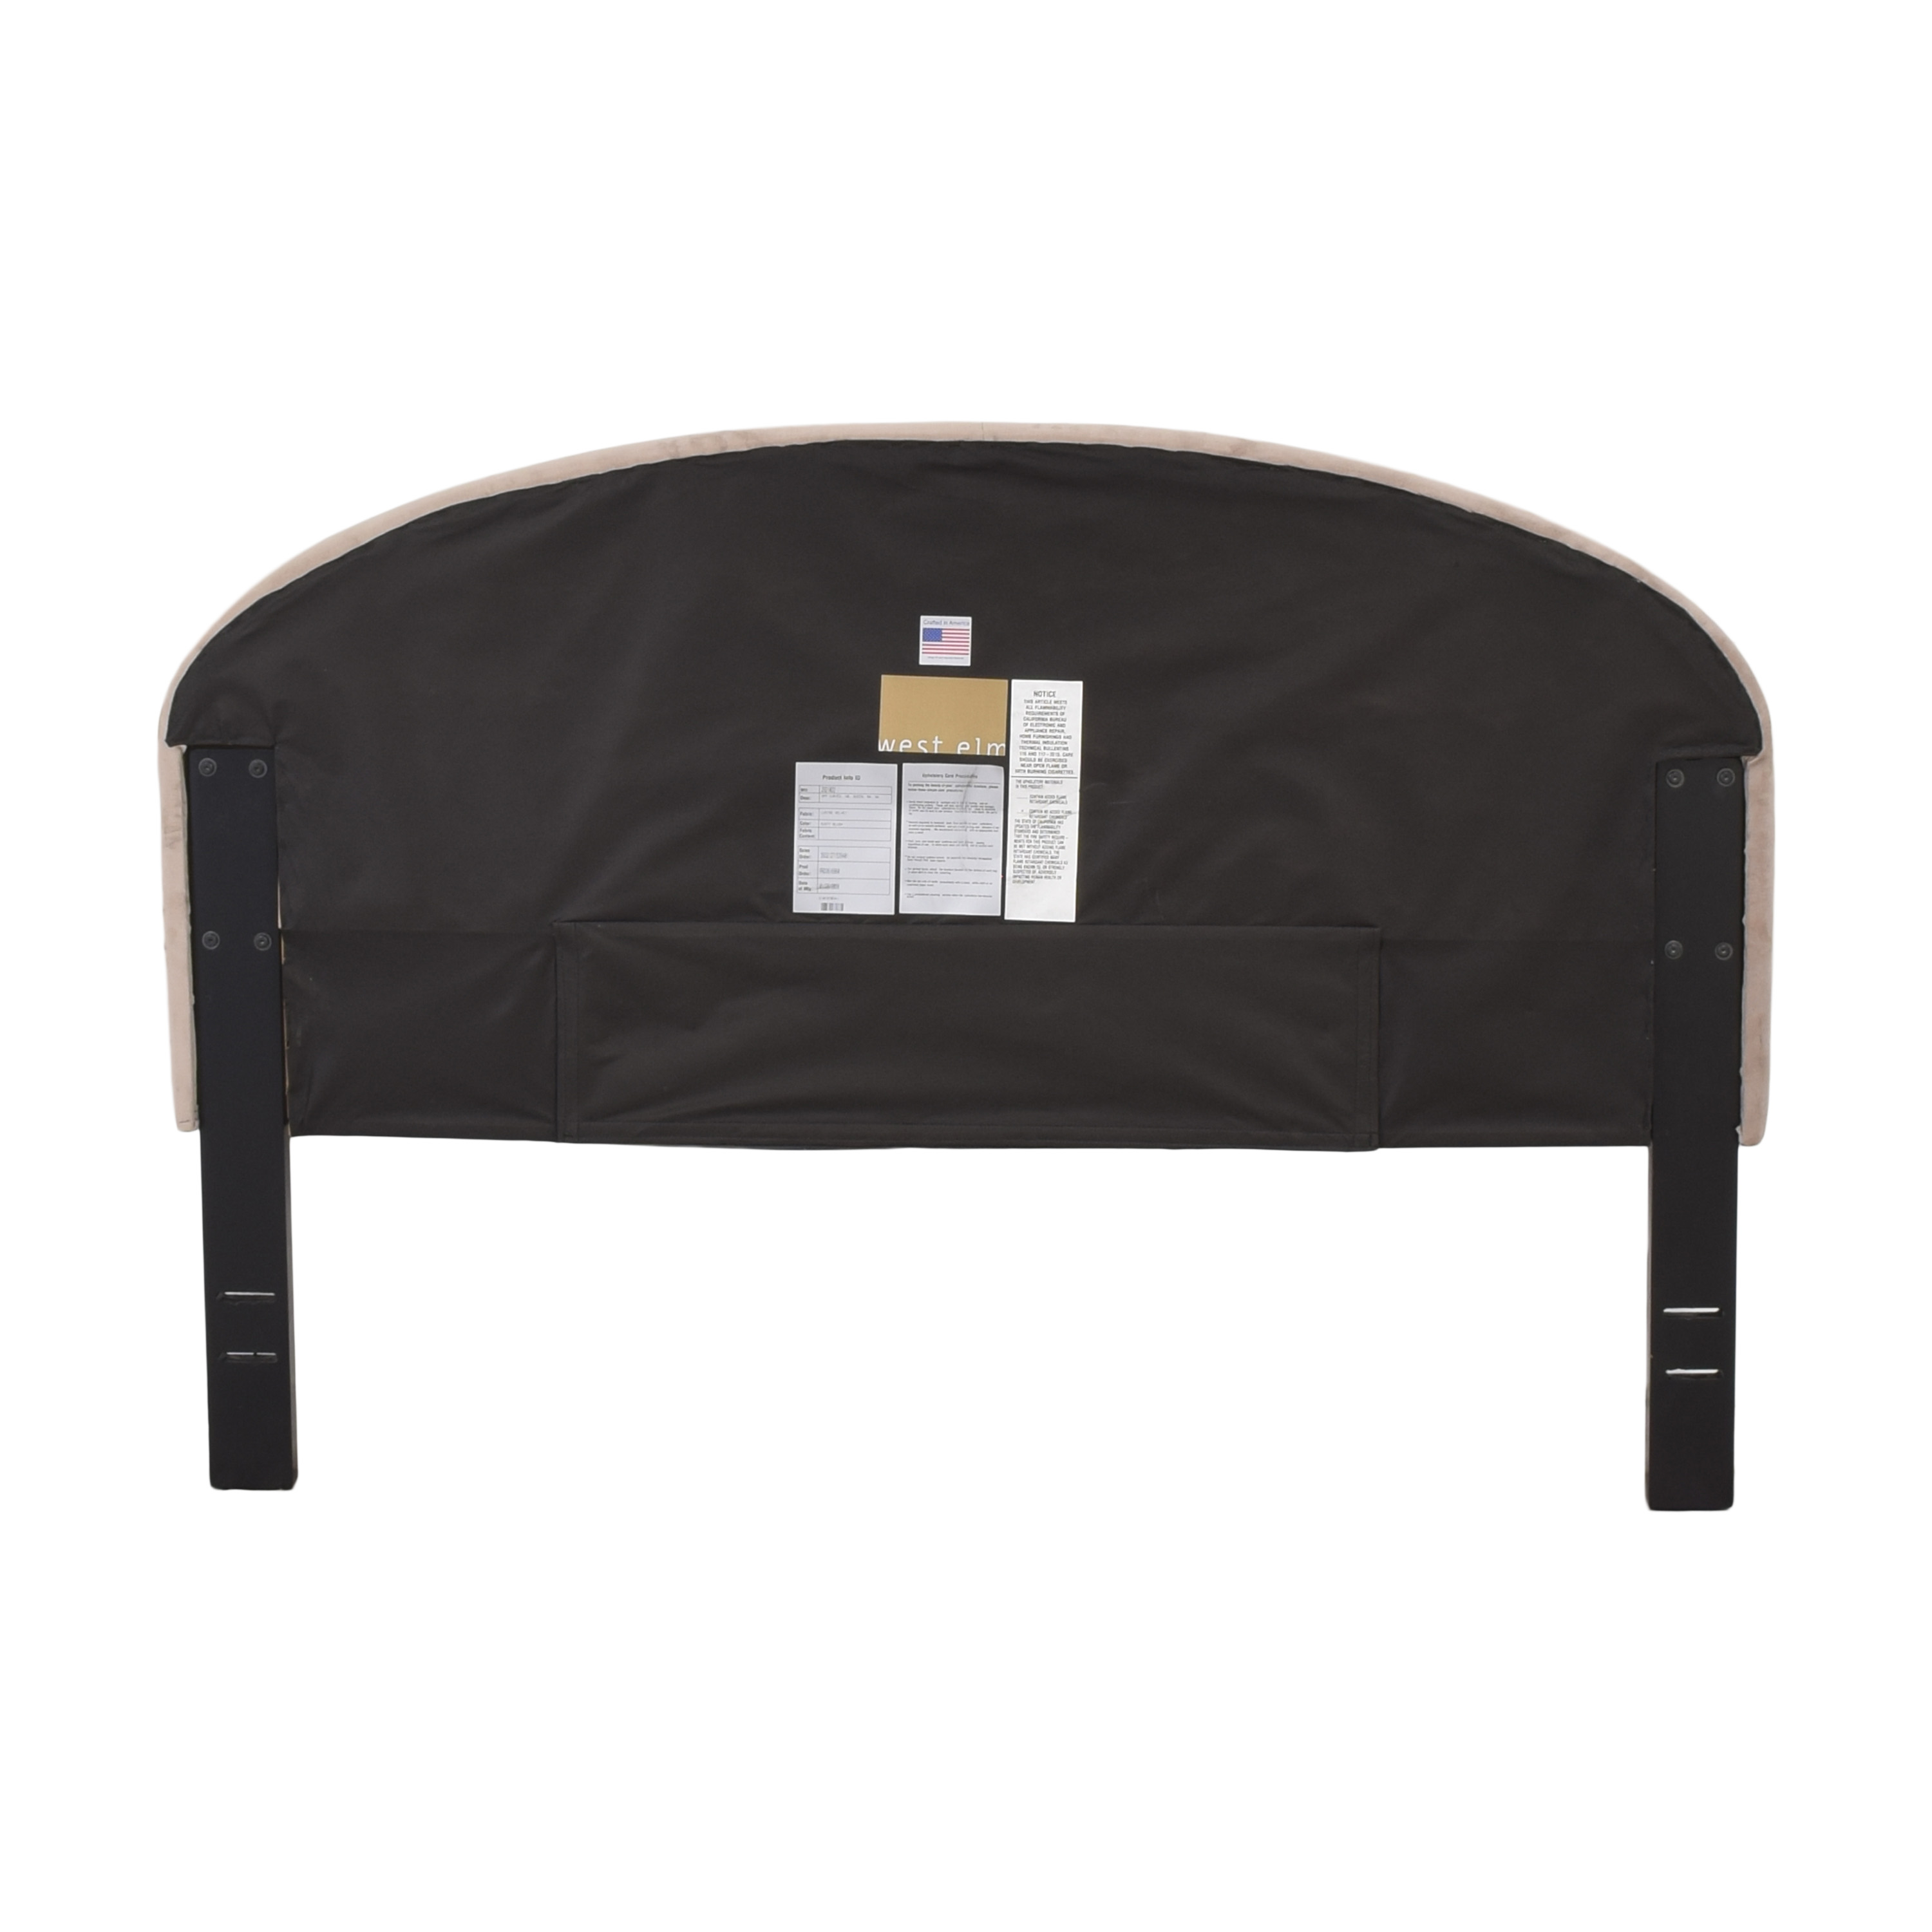 West Elm West Elm Queen Curved Headboard dimensions